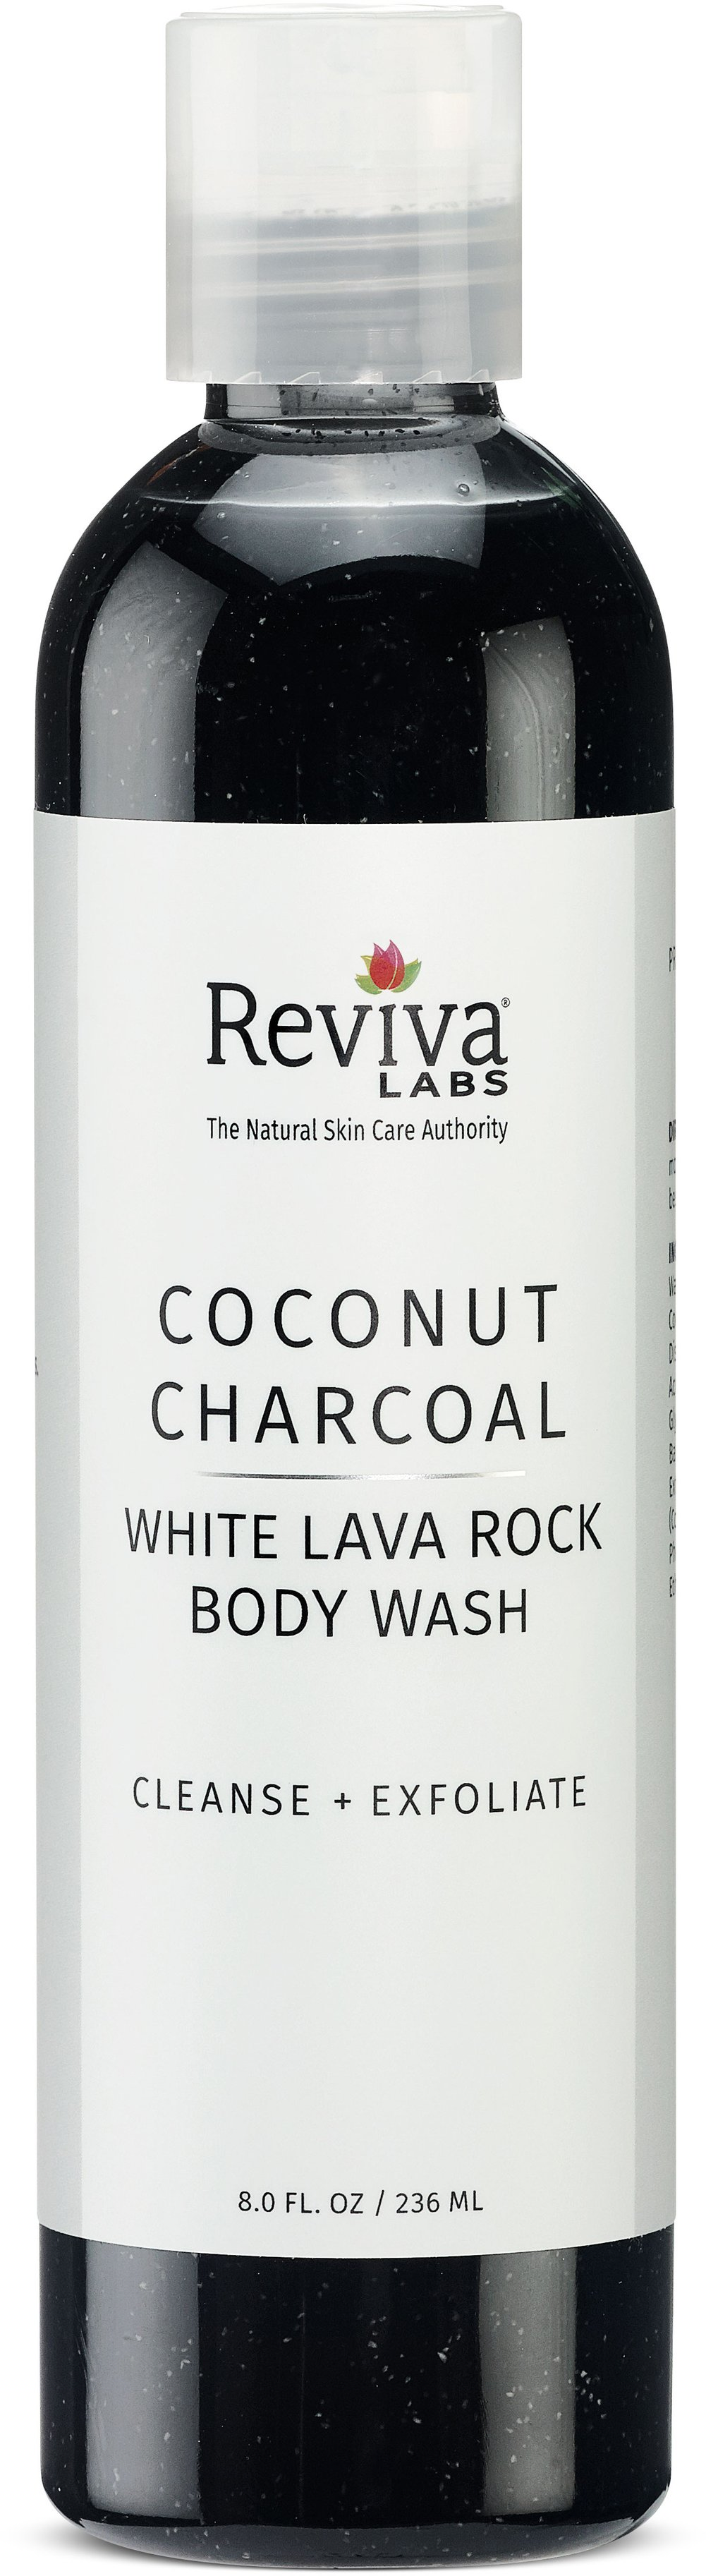 Coconut Charcoal and White Lava Body Wash